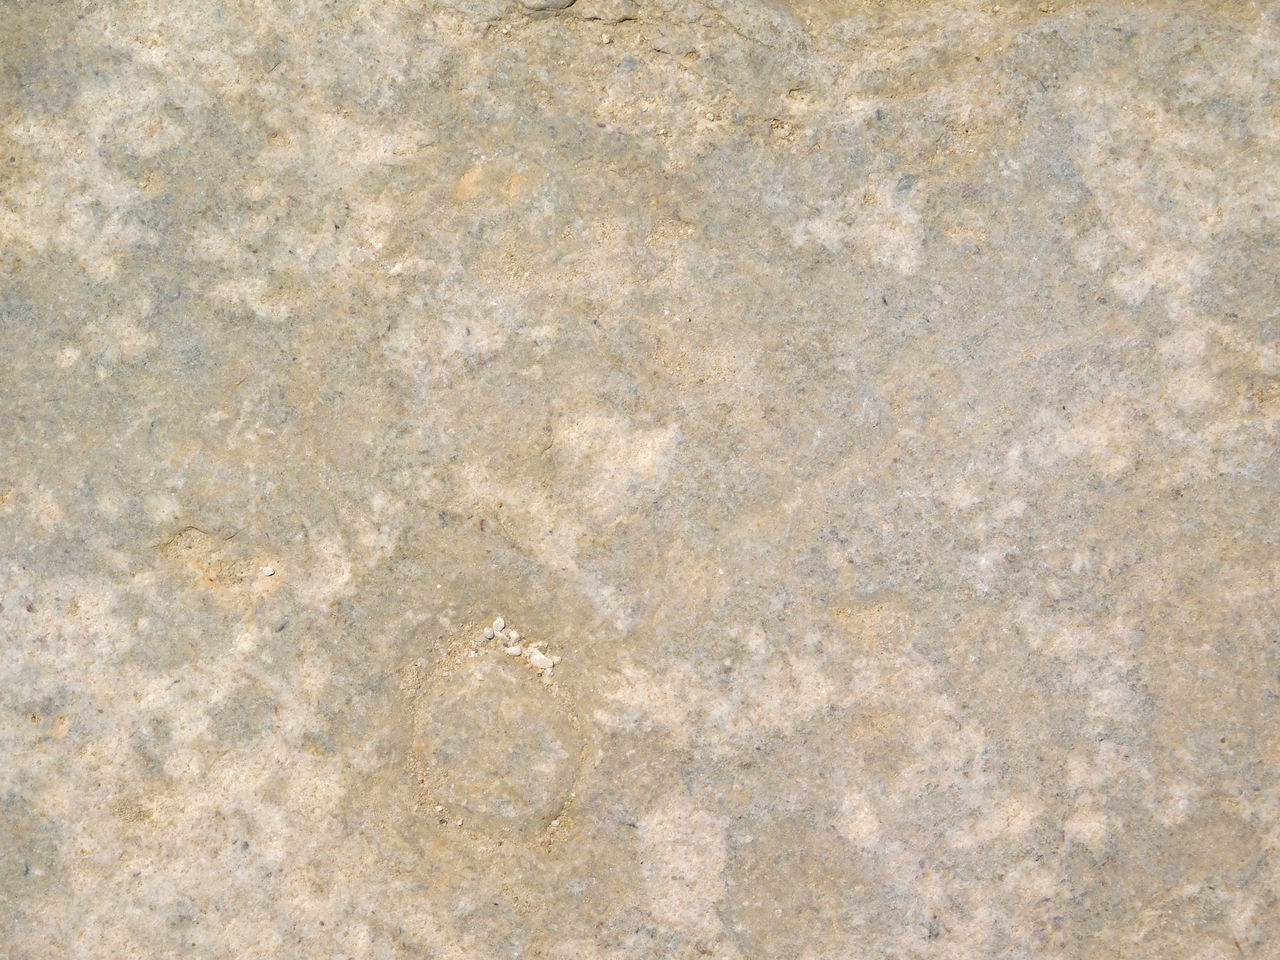 Stone texture Abstract Backgrounds Close-up Colored Background Full Frame Gray Macro Marble Material Nature No People Pattern Rock - Object Smooth Stone - Object Stone Material Textured